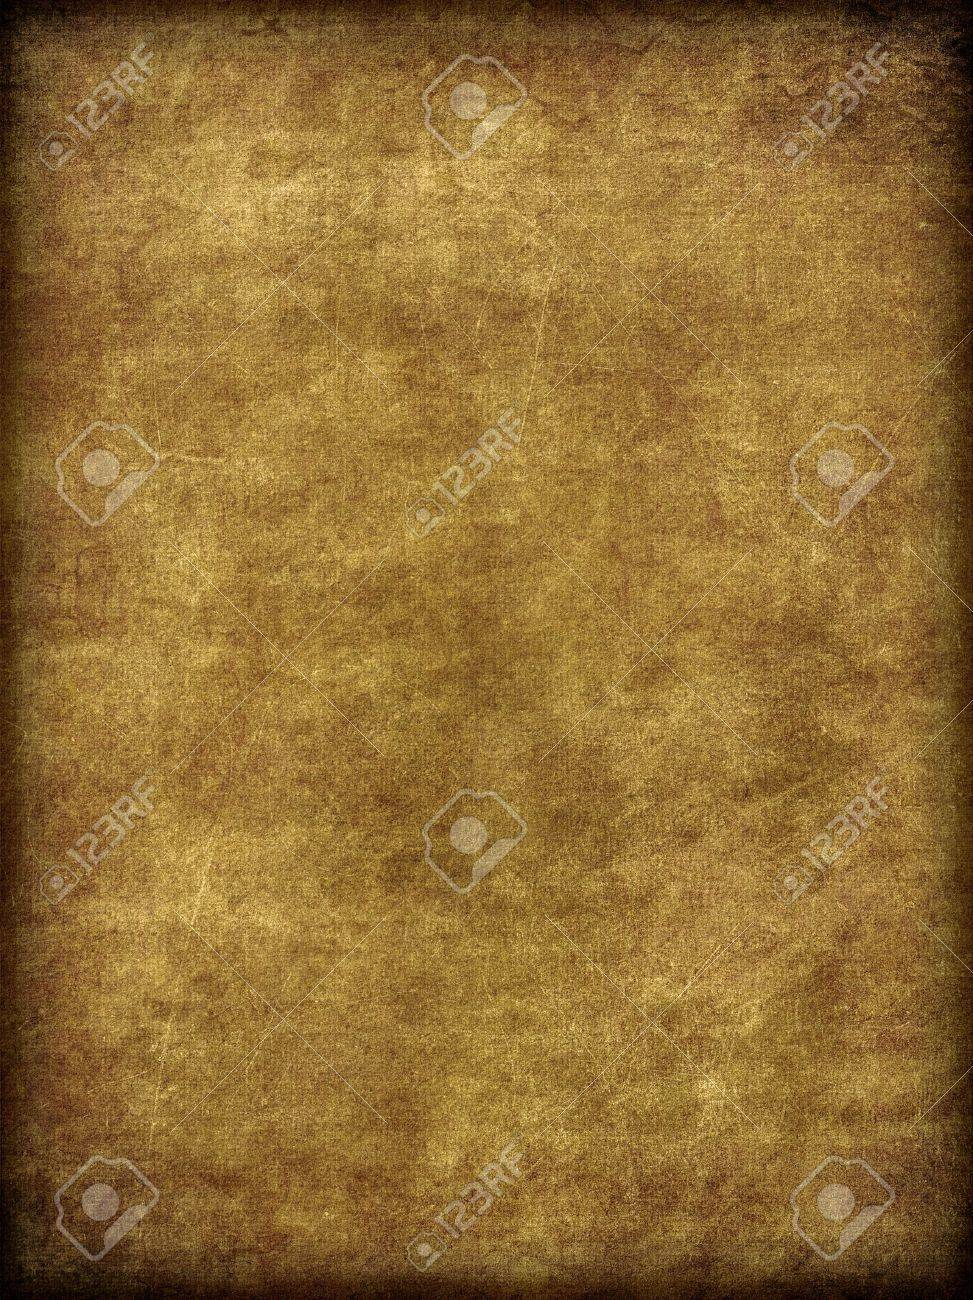 A weathered aged and worn background texture image of a burlap or canvas fabric like material. - 7607128